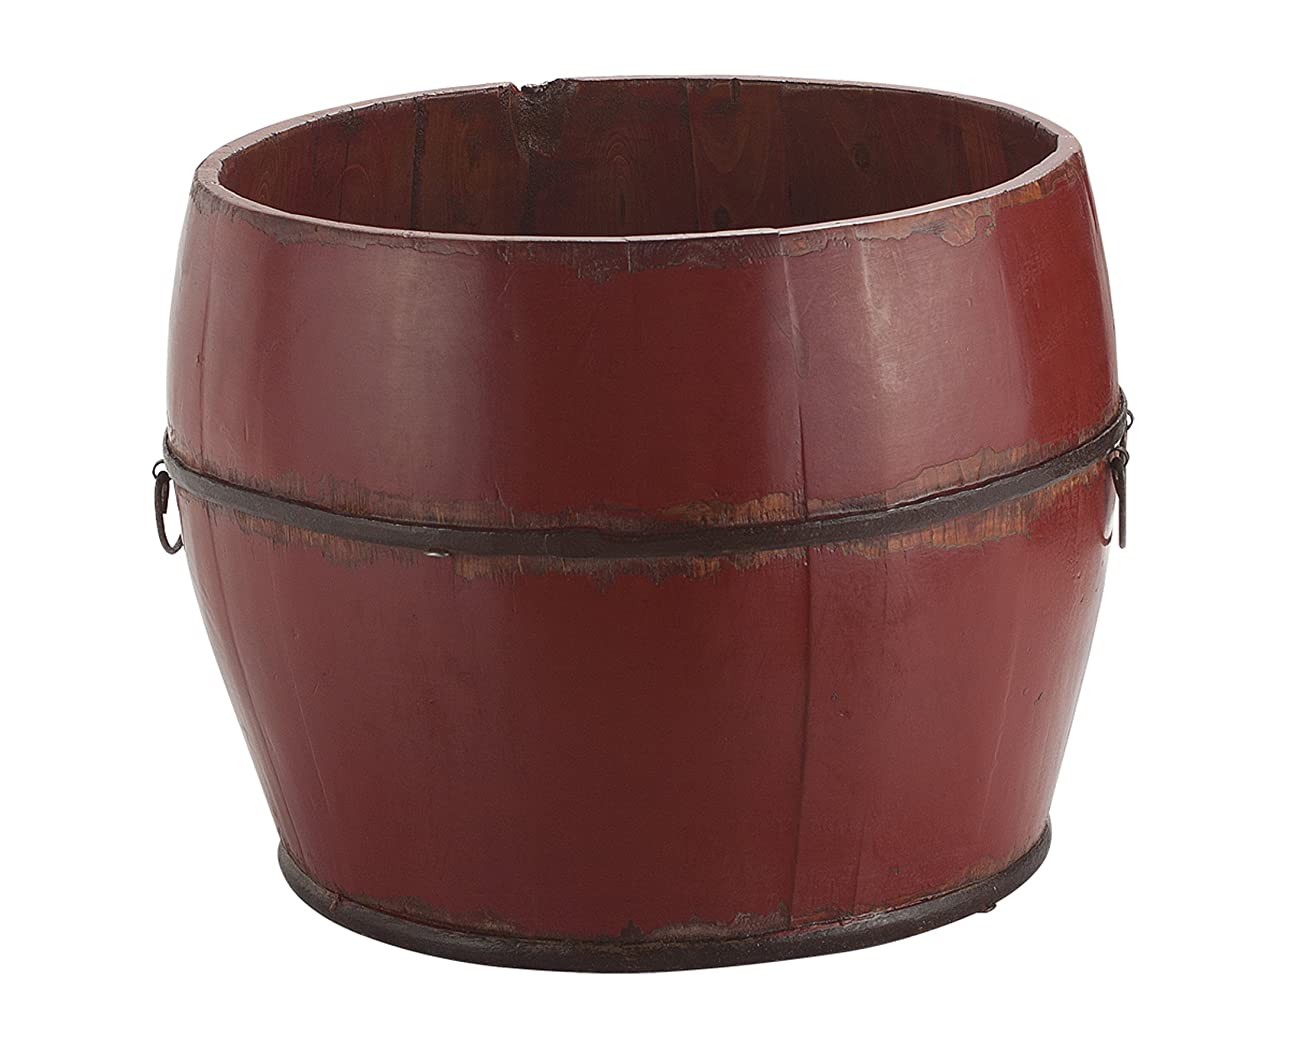 Antique Revival Vintage Benton Bucket, Red 0